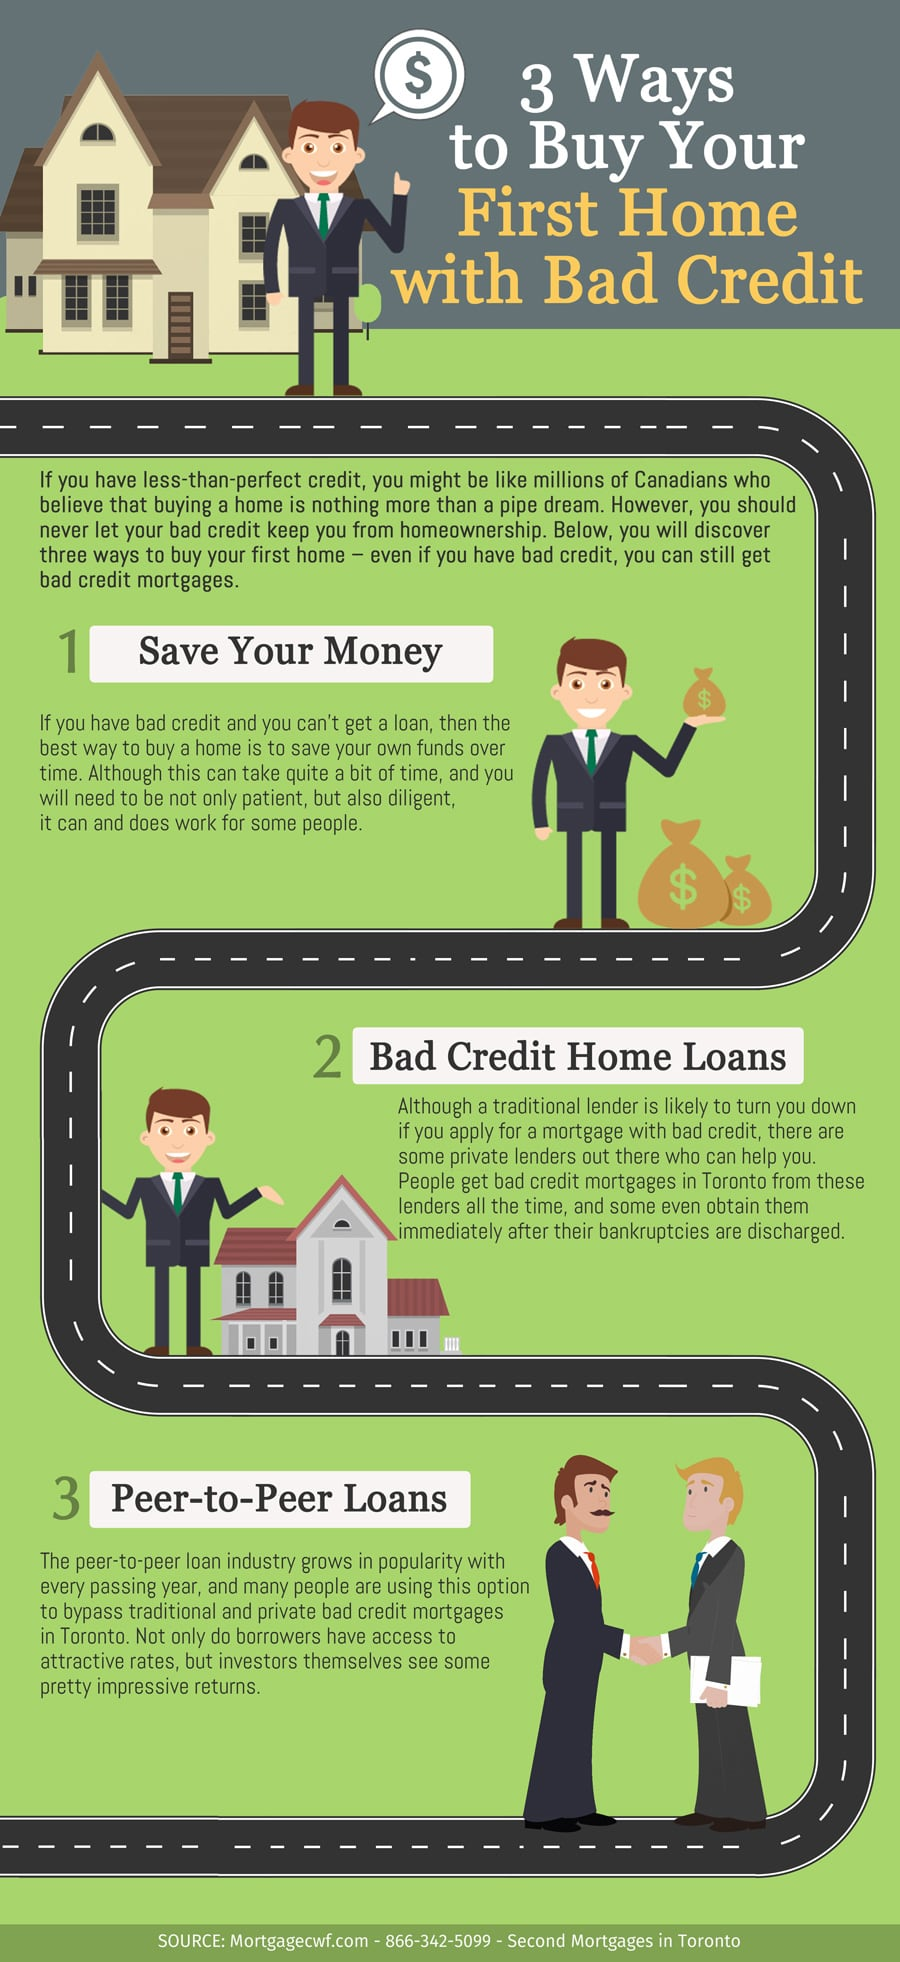 3 Ways to Buy Your First Home with Bad Credit